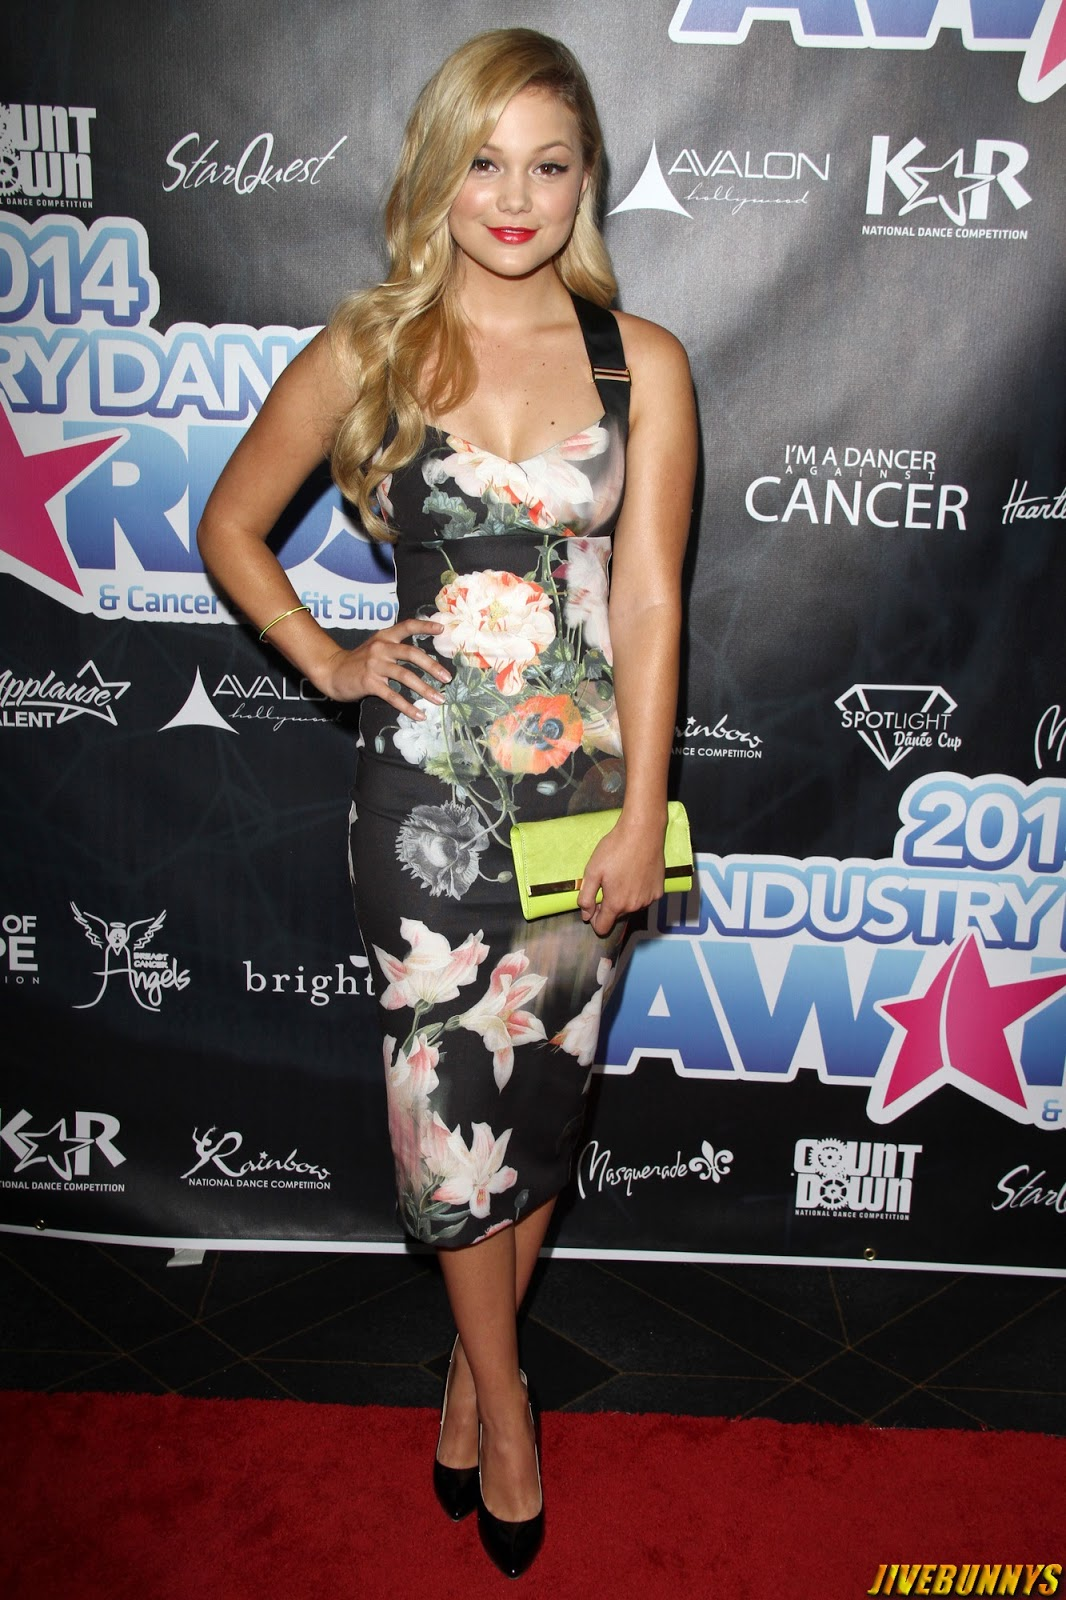 Olivia Holt - Third Annual Industry Dance Awards in Hollywood 9/10/14